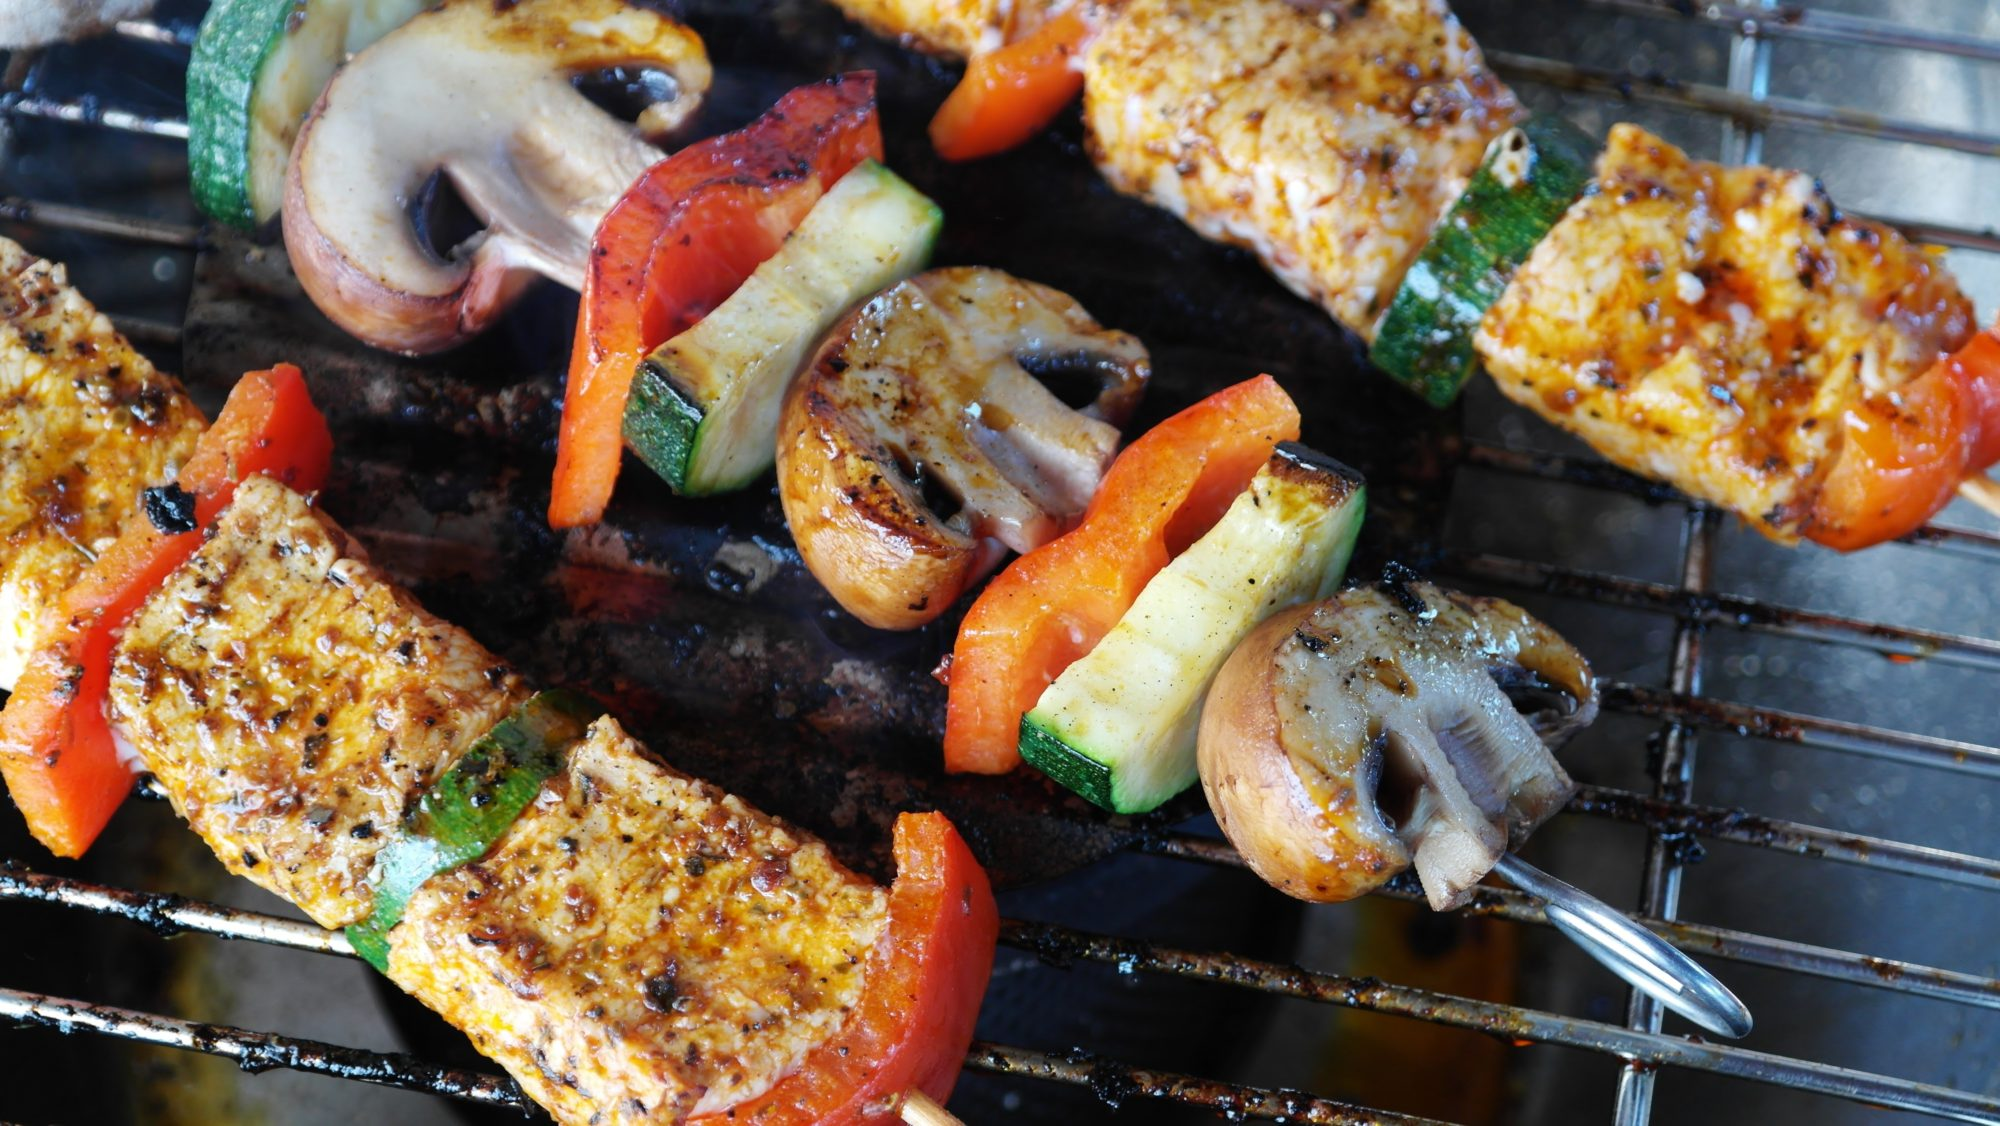 grilled meat, mushrooms, and vegetables